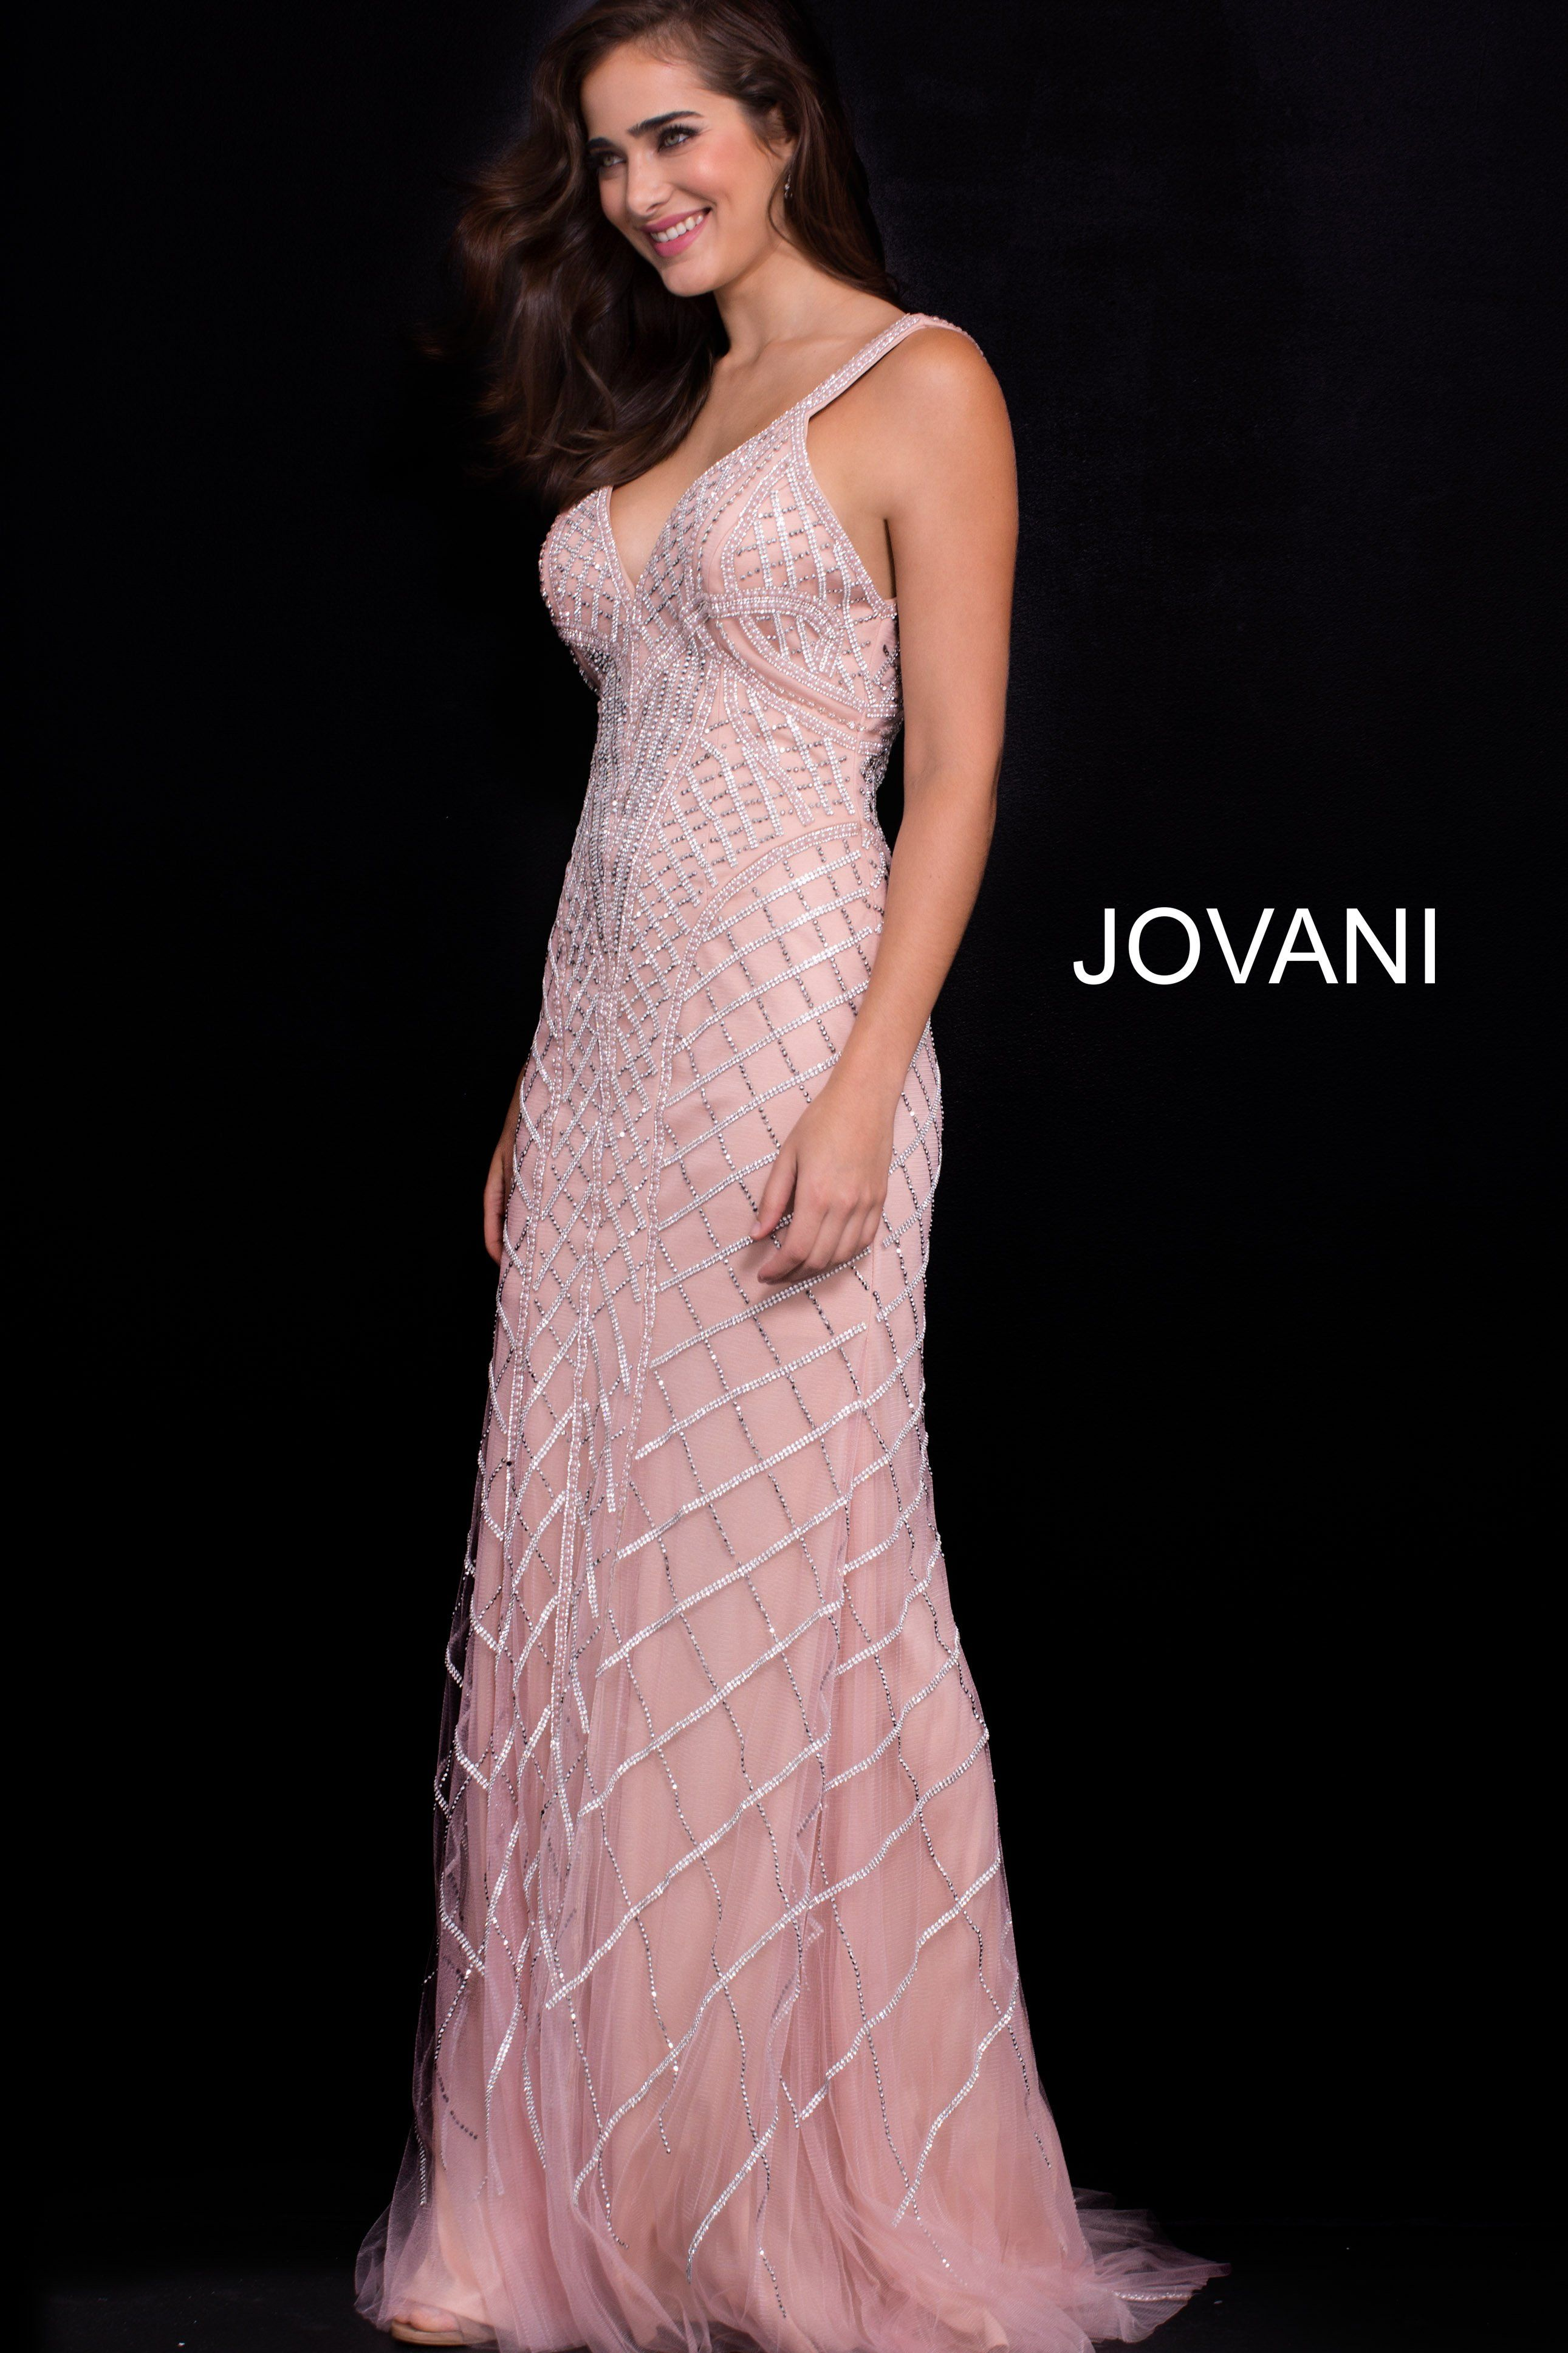 Jovani 55821 | Ships and Products